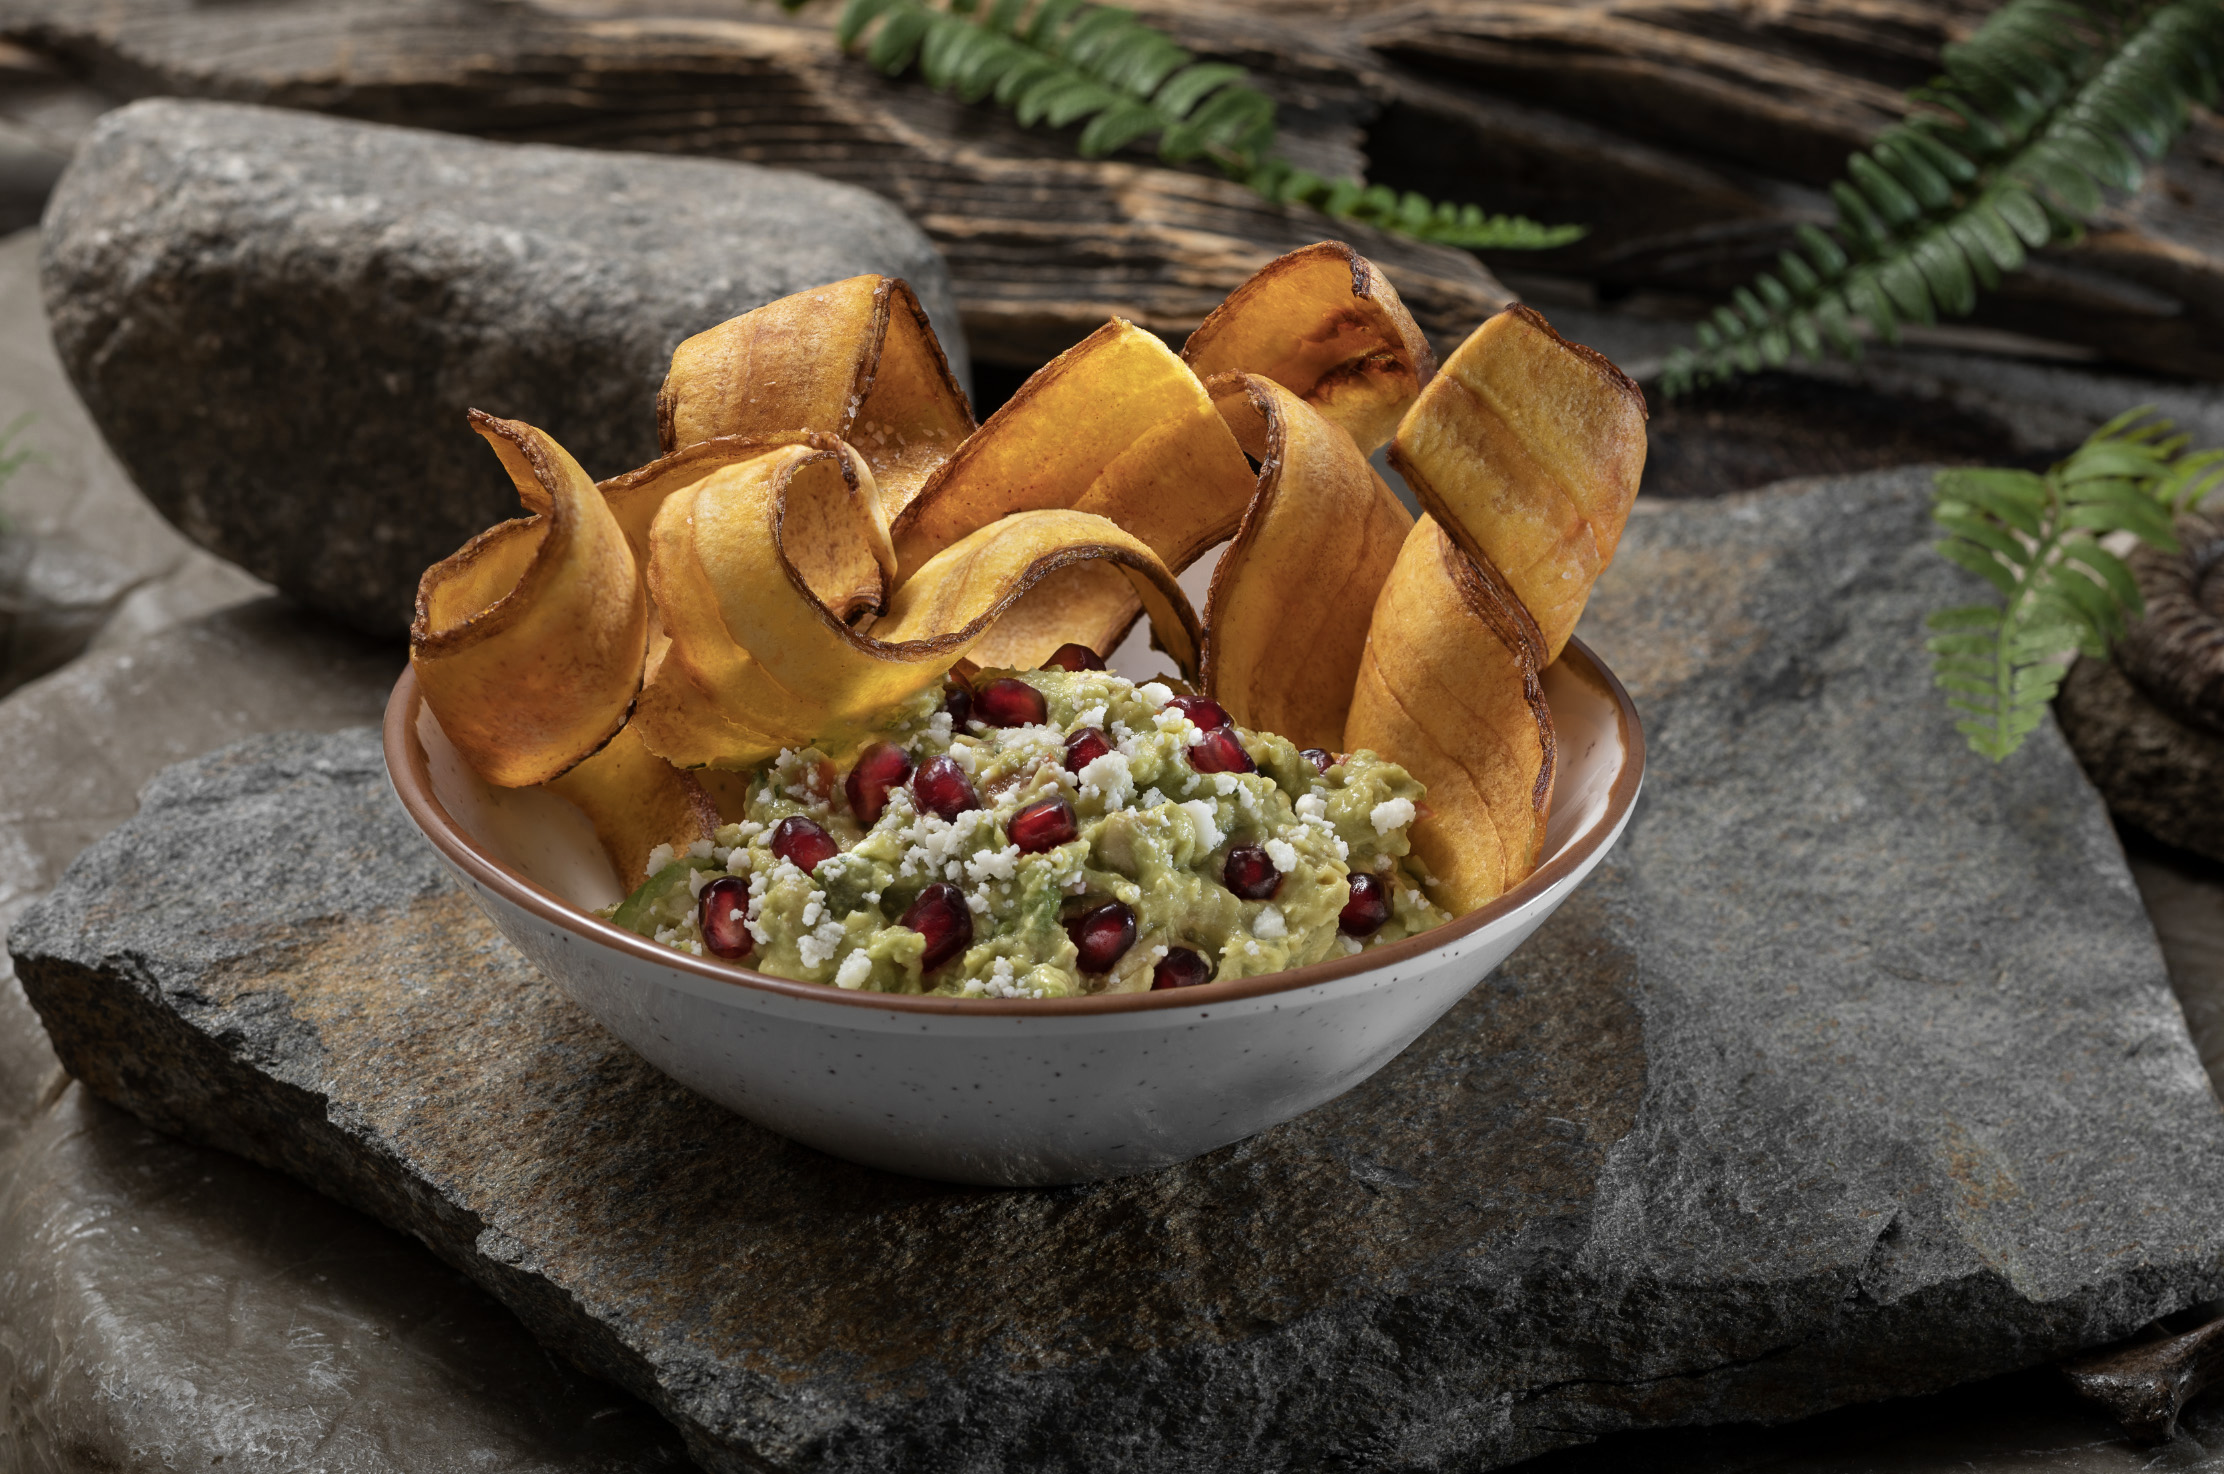 Pomegranate Guacamole with Plantain Chips